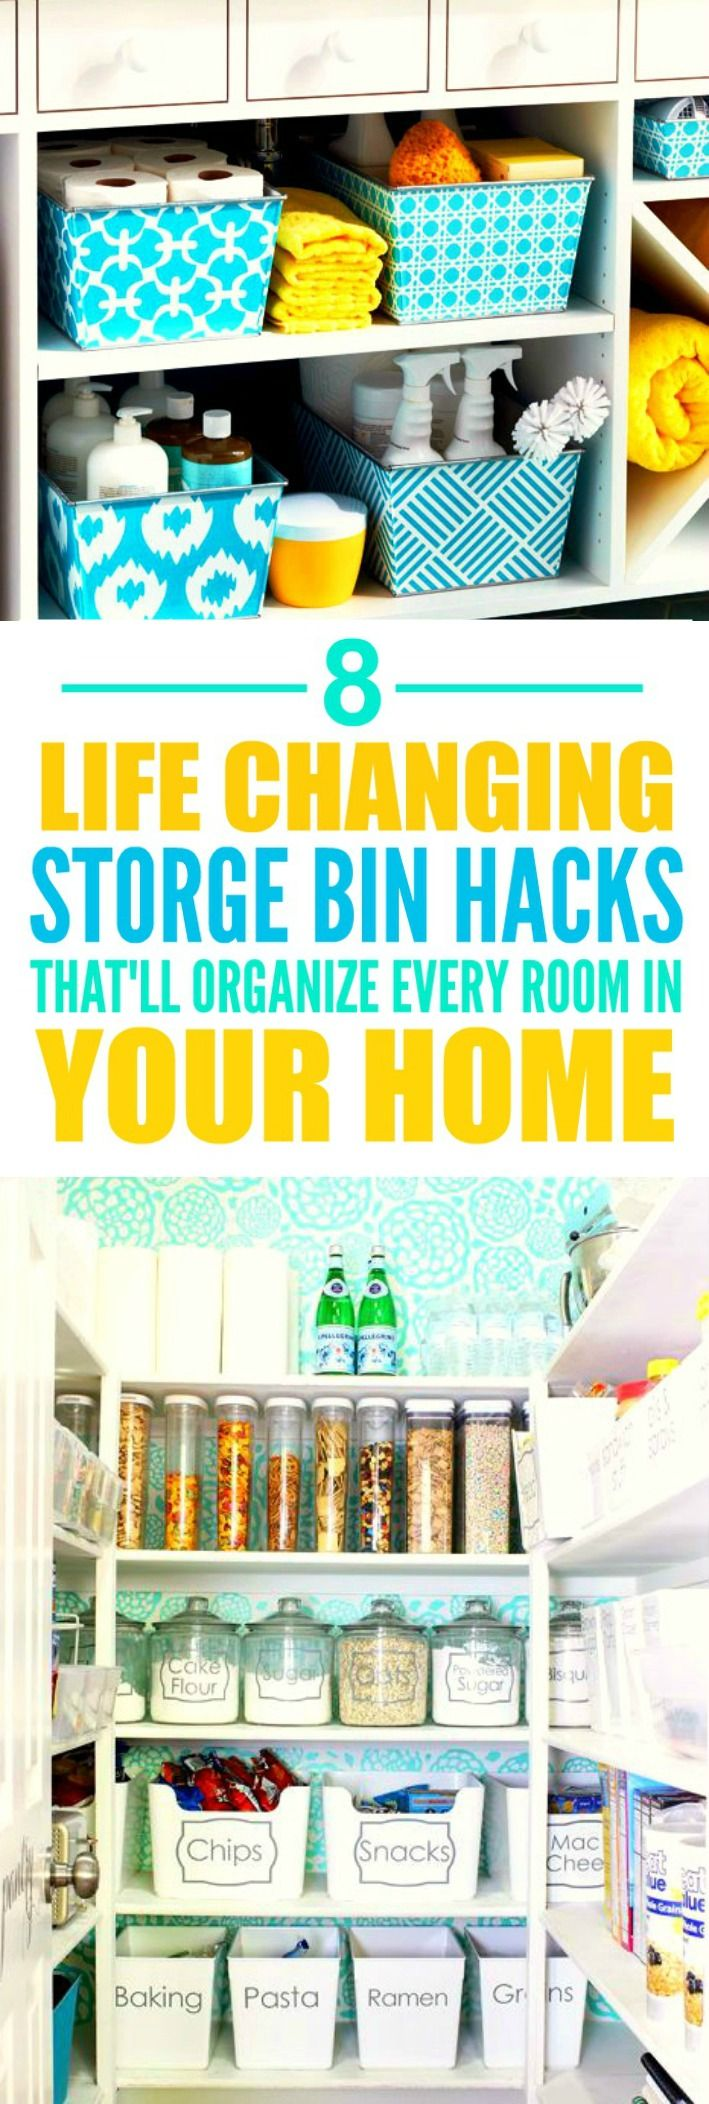 These 8 life changing storage bin hacks are THE BEST! I'm so glad I found these AWESOME tips! Now I have some good ideas on how to organize my rooms! Definitely repinning for later!